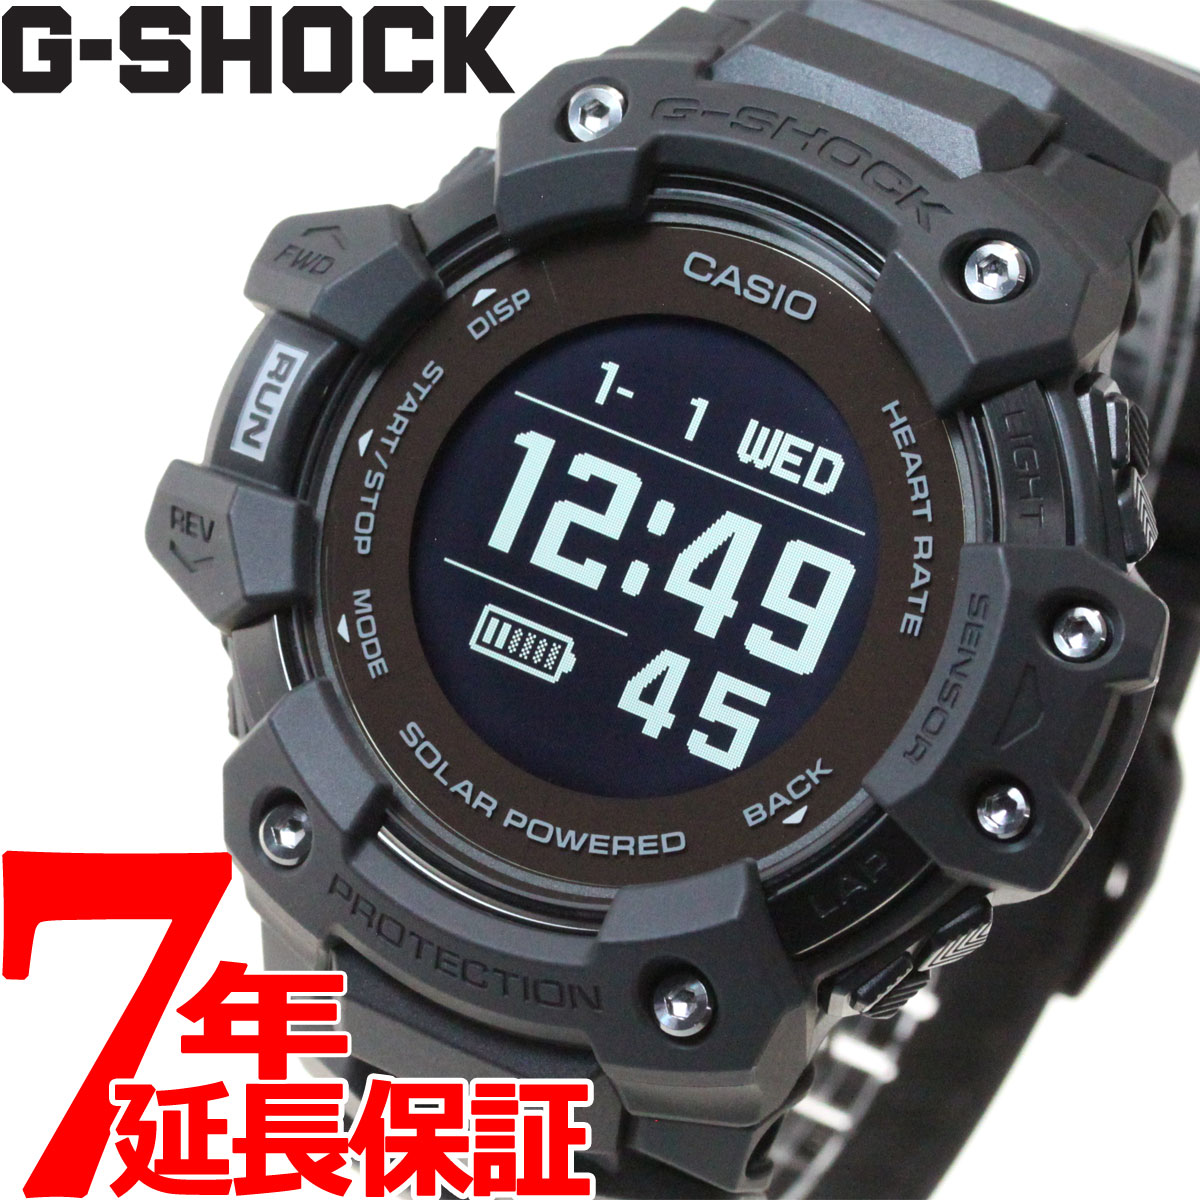 腕時計, メンズ腕時計 2001OFF37202359G-SHOCK G-SQUAD G CASIO Bluetooth GPS GBD-H1000-1JR2020